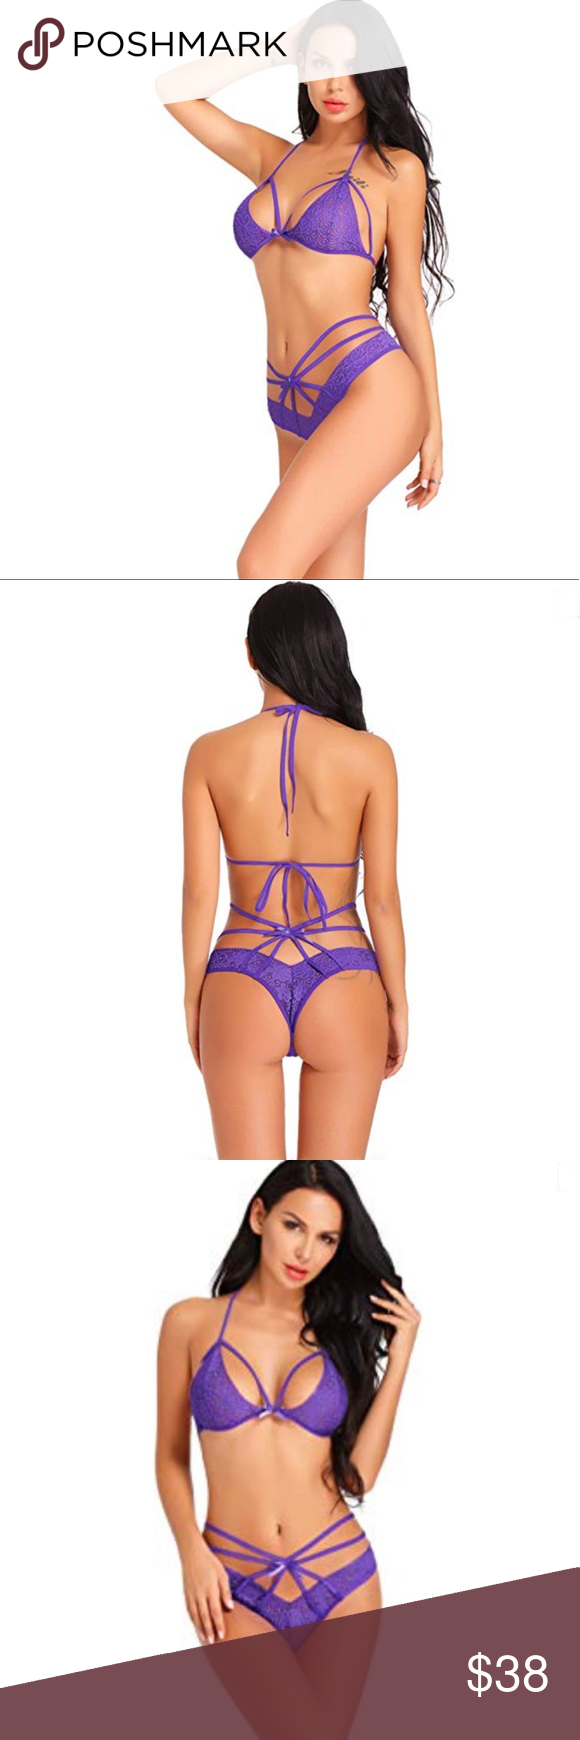 16c0842fd9e Sexy Purple Strappy Halter 2 Piece Set Bra Panty Purple 85% Polyester